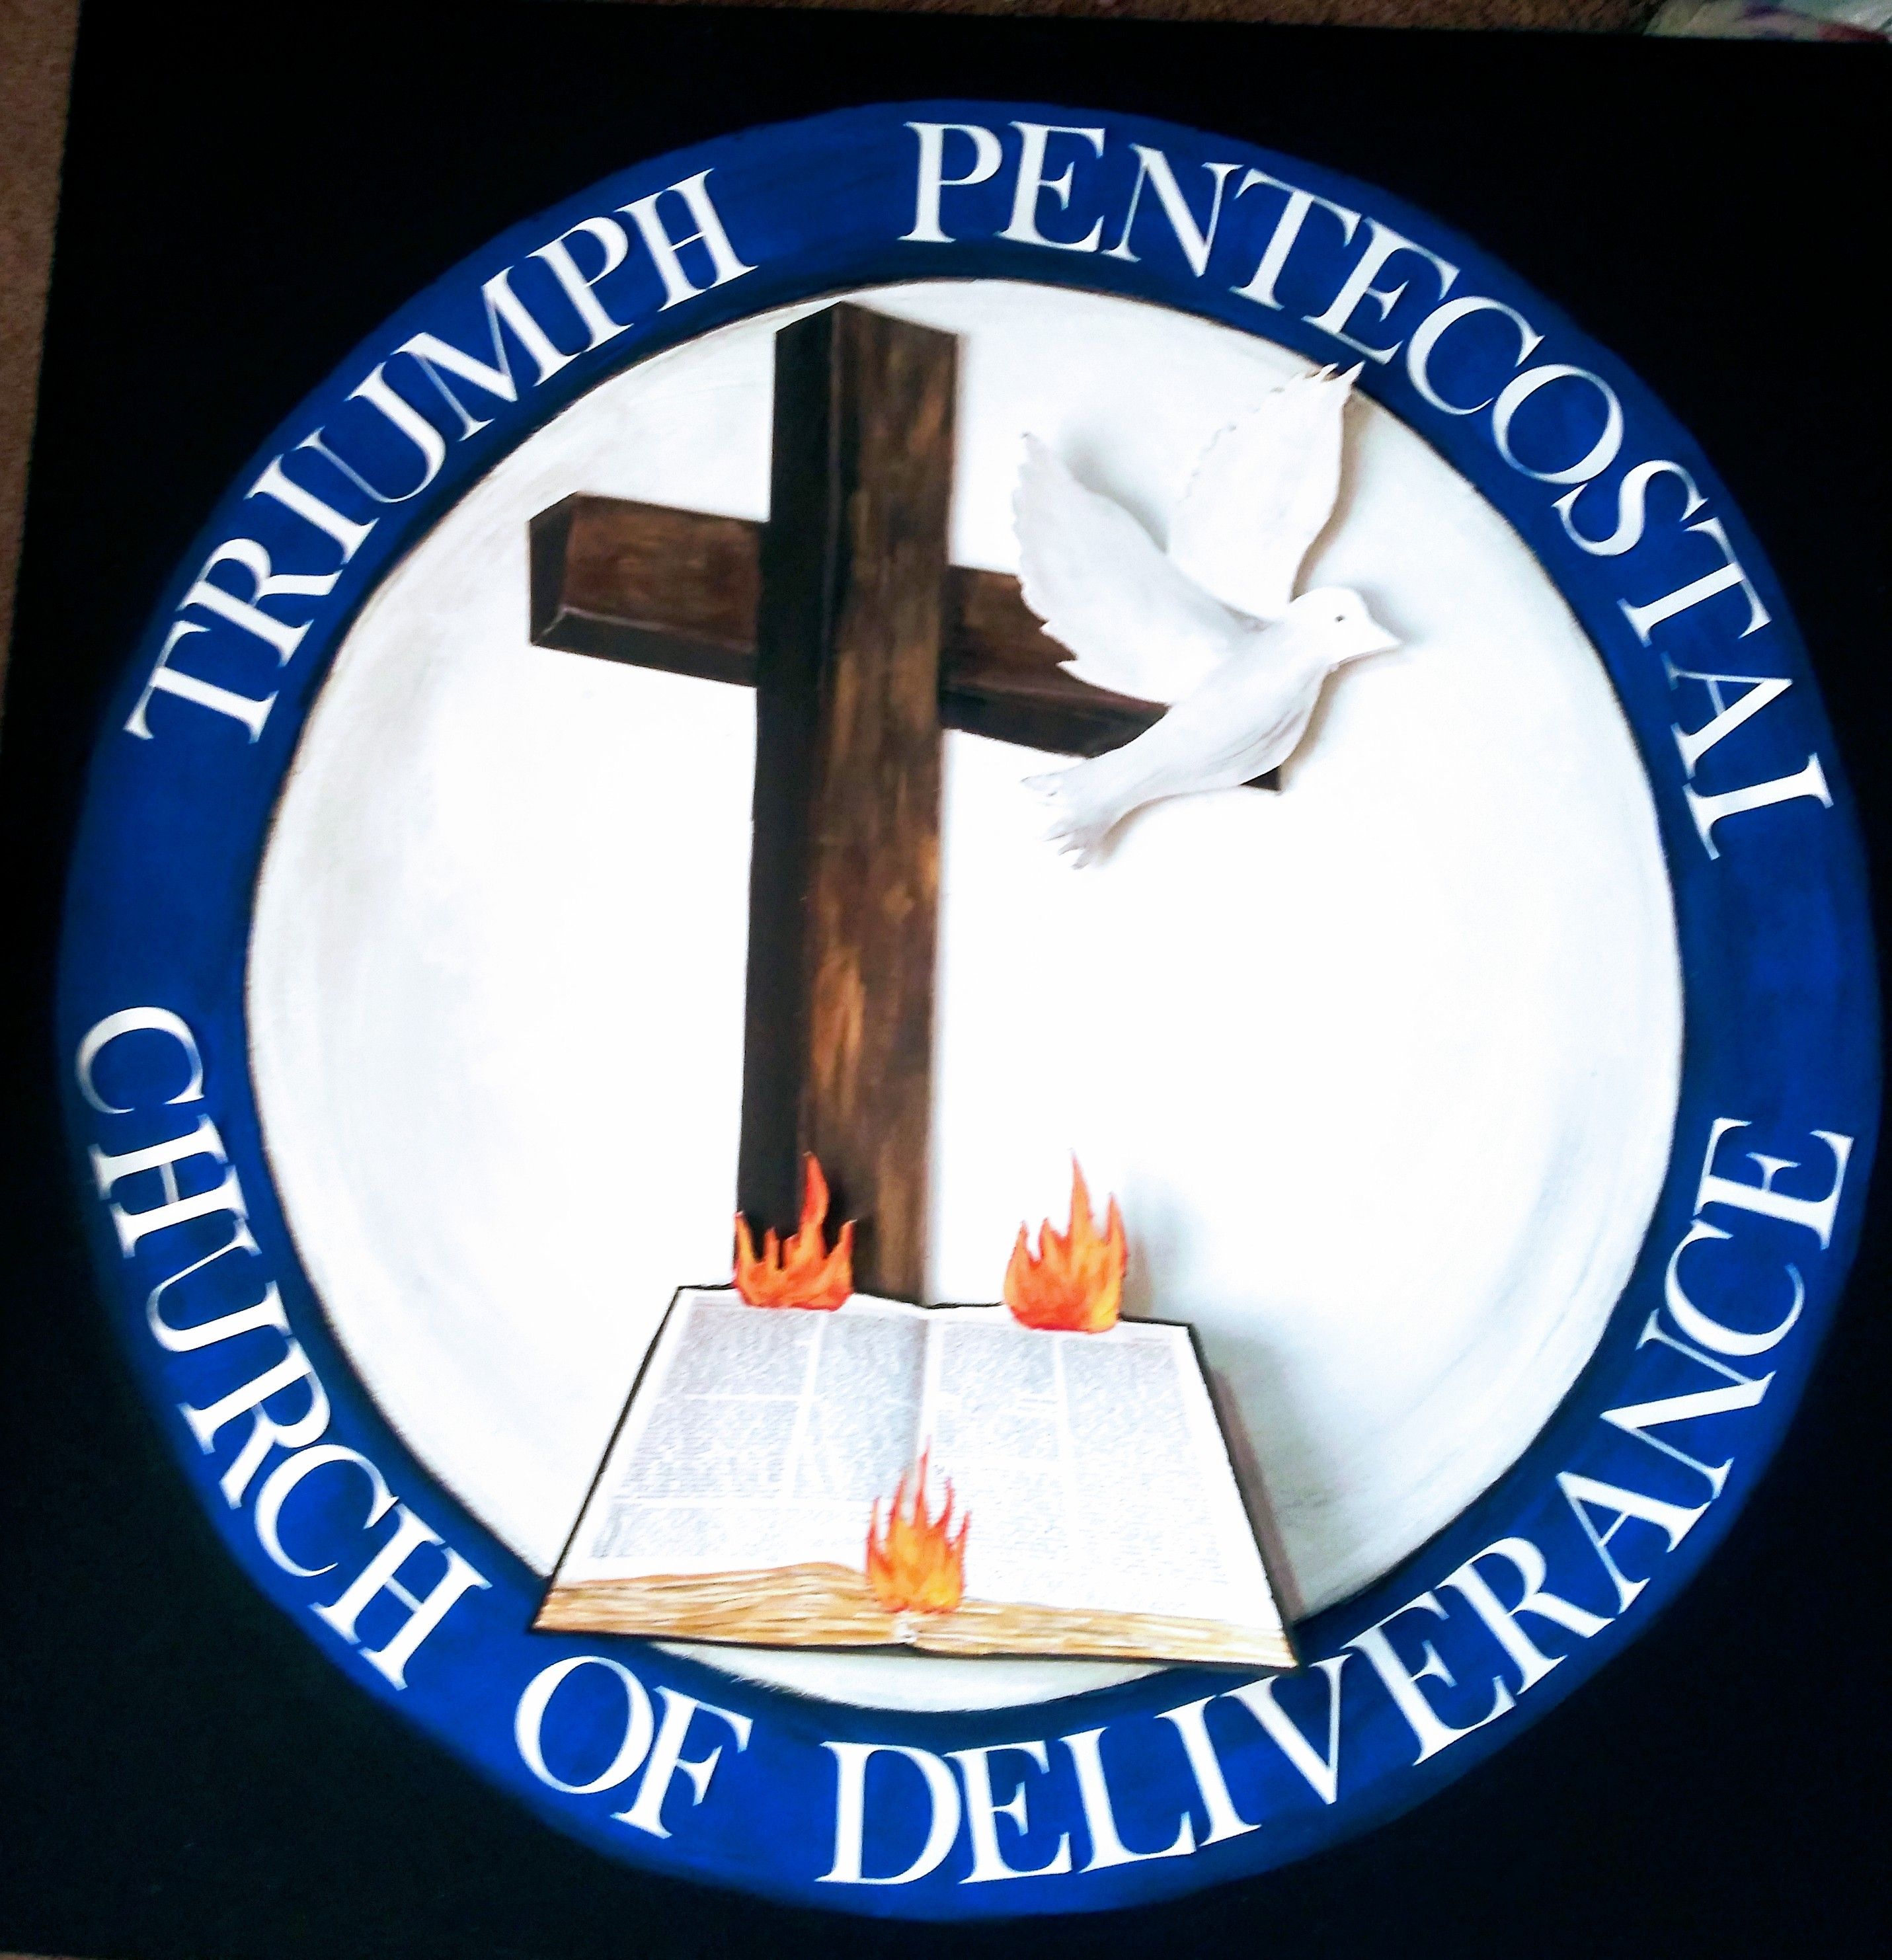 DESCRIPTION: Church Logo Sign